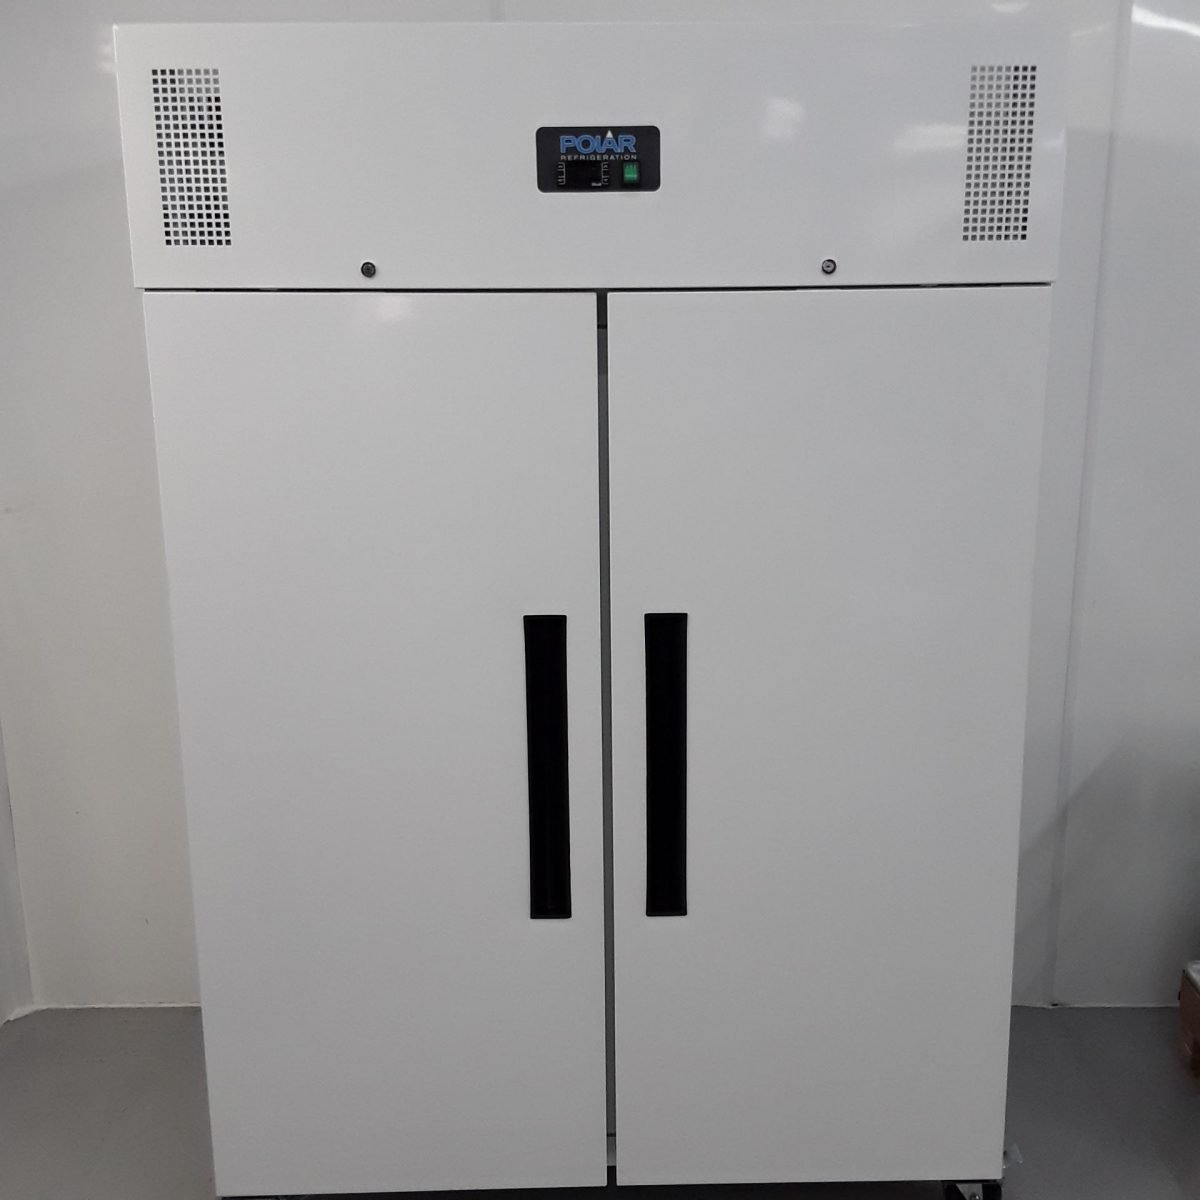 New B Grade Polar CD616 Double Upright Freezer White For Sale